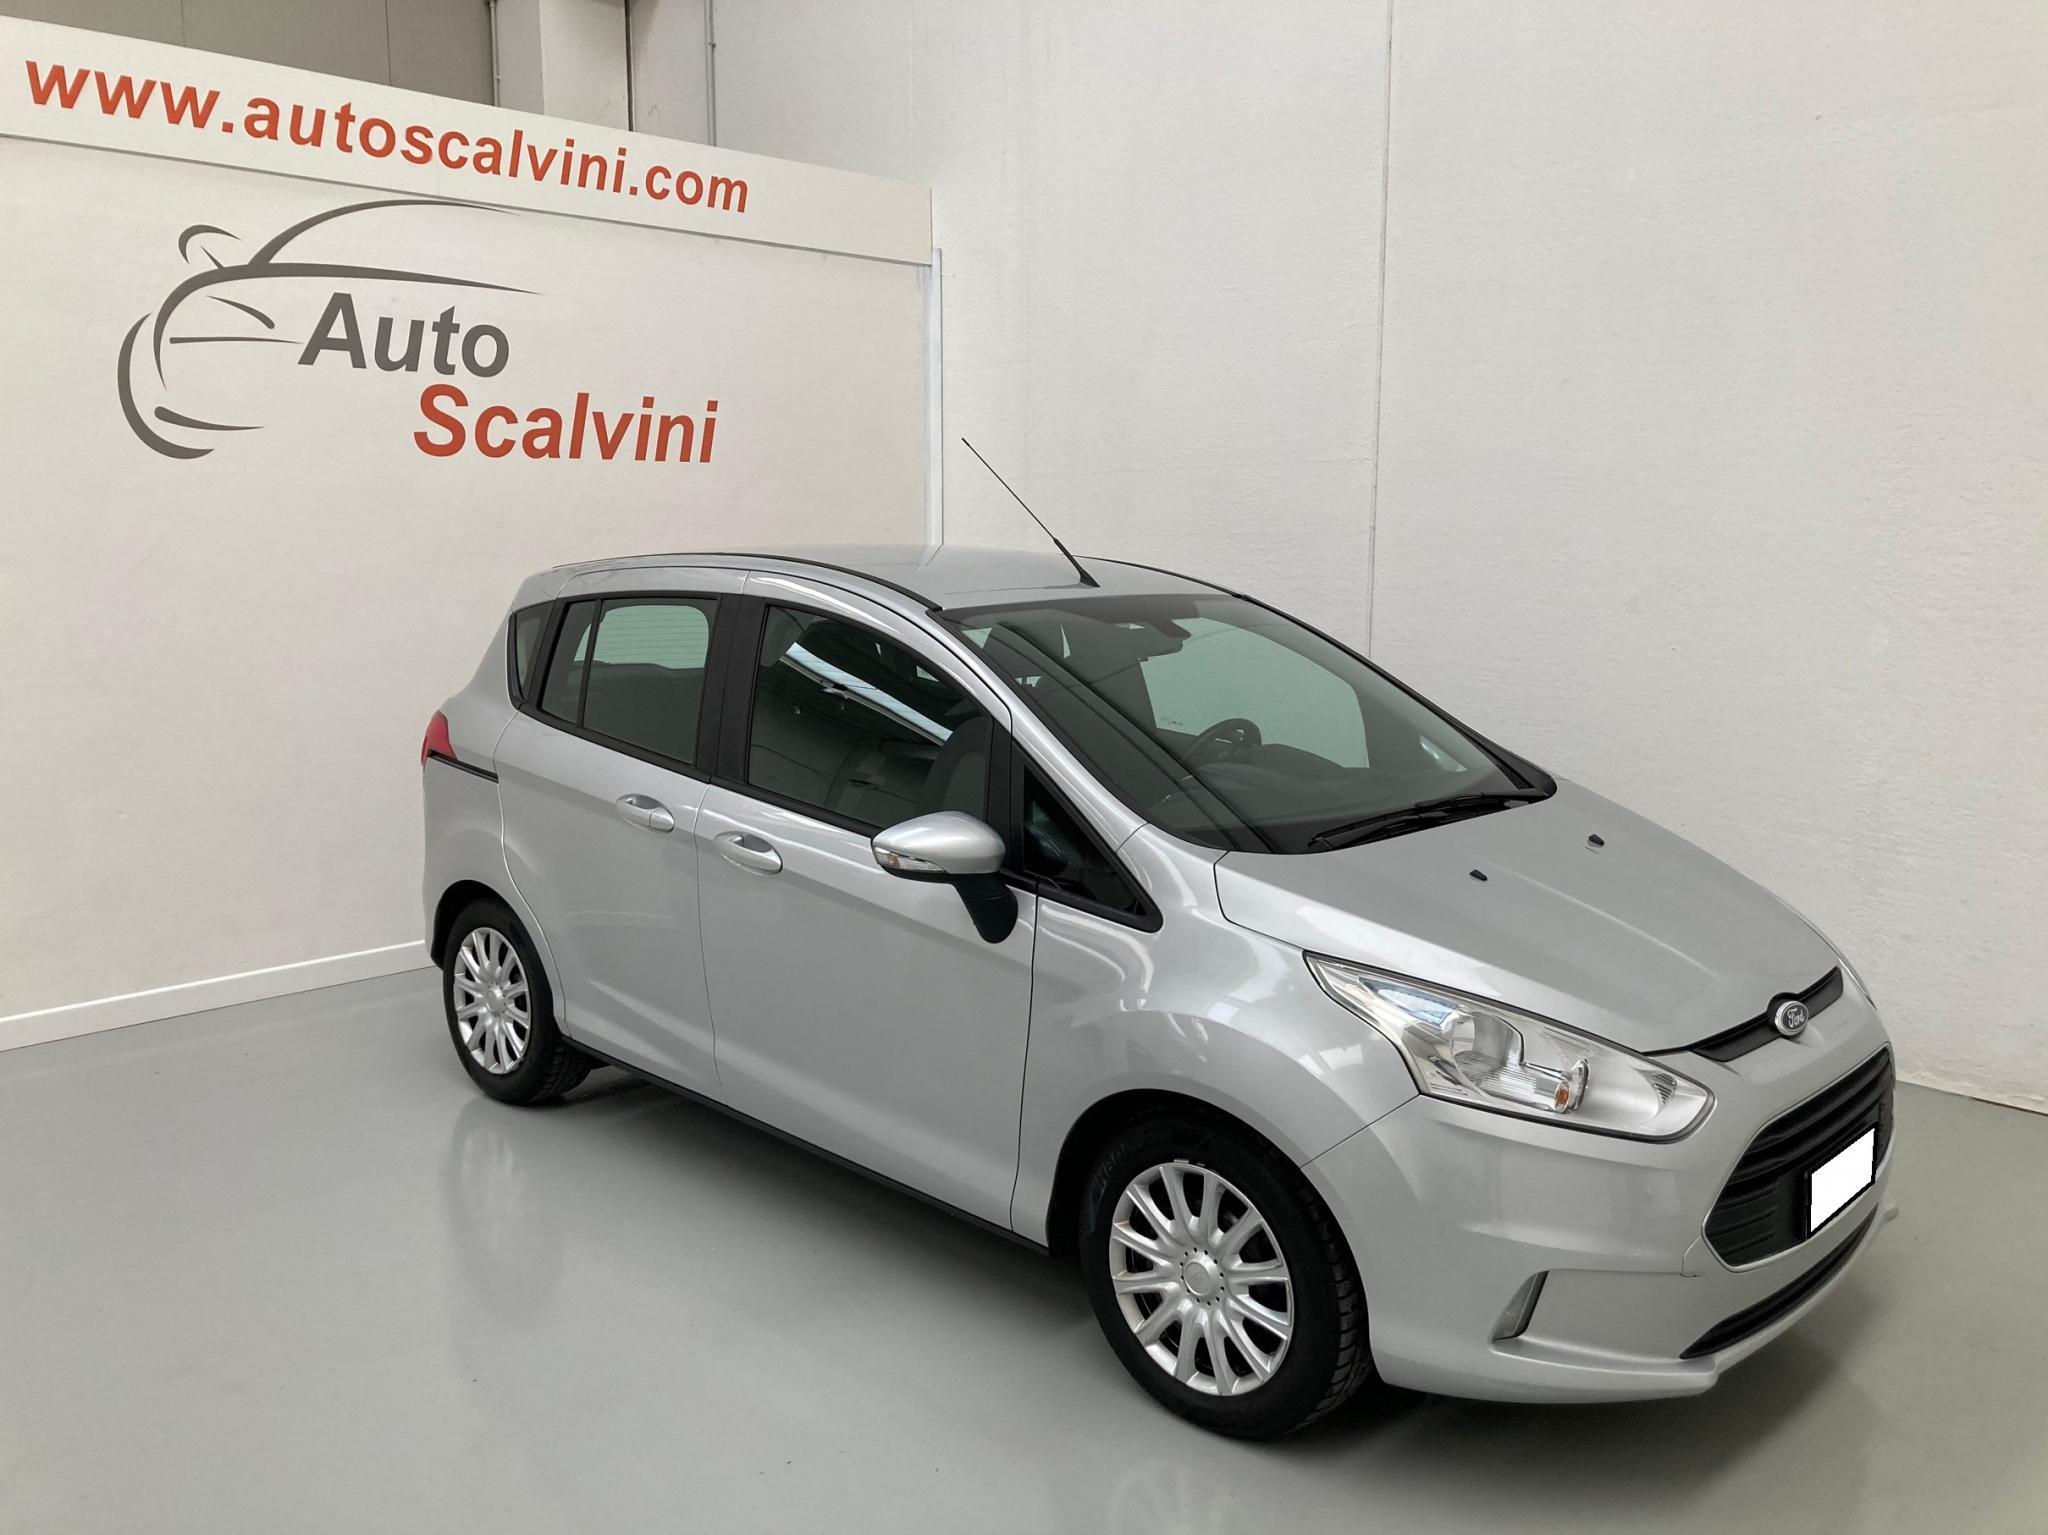 Ford B-Max 1.6 105 CV Powershift Titanium GPL #1 PROPRIETARIO #ADATTA A GUIDA PER INVALIDITA'